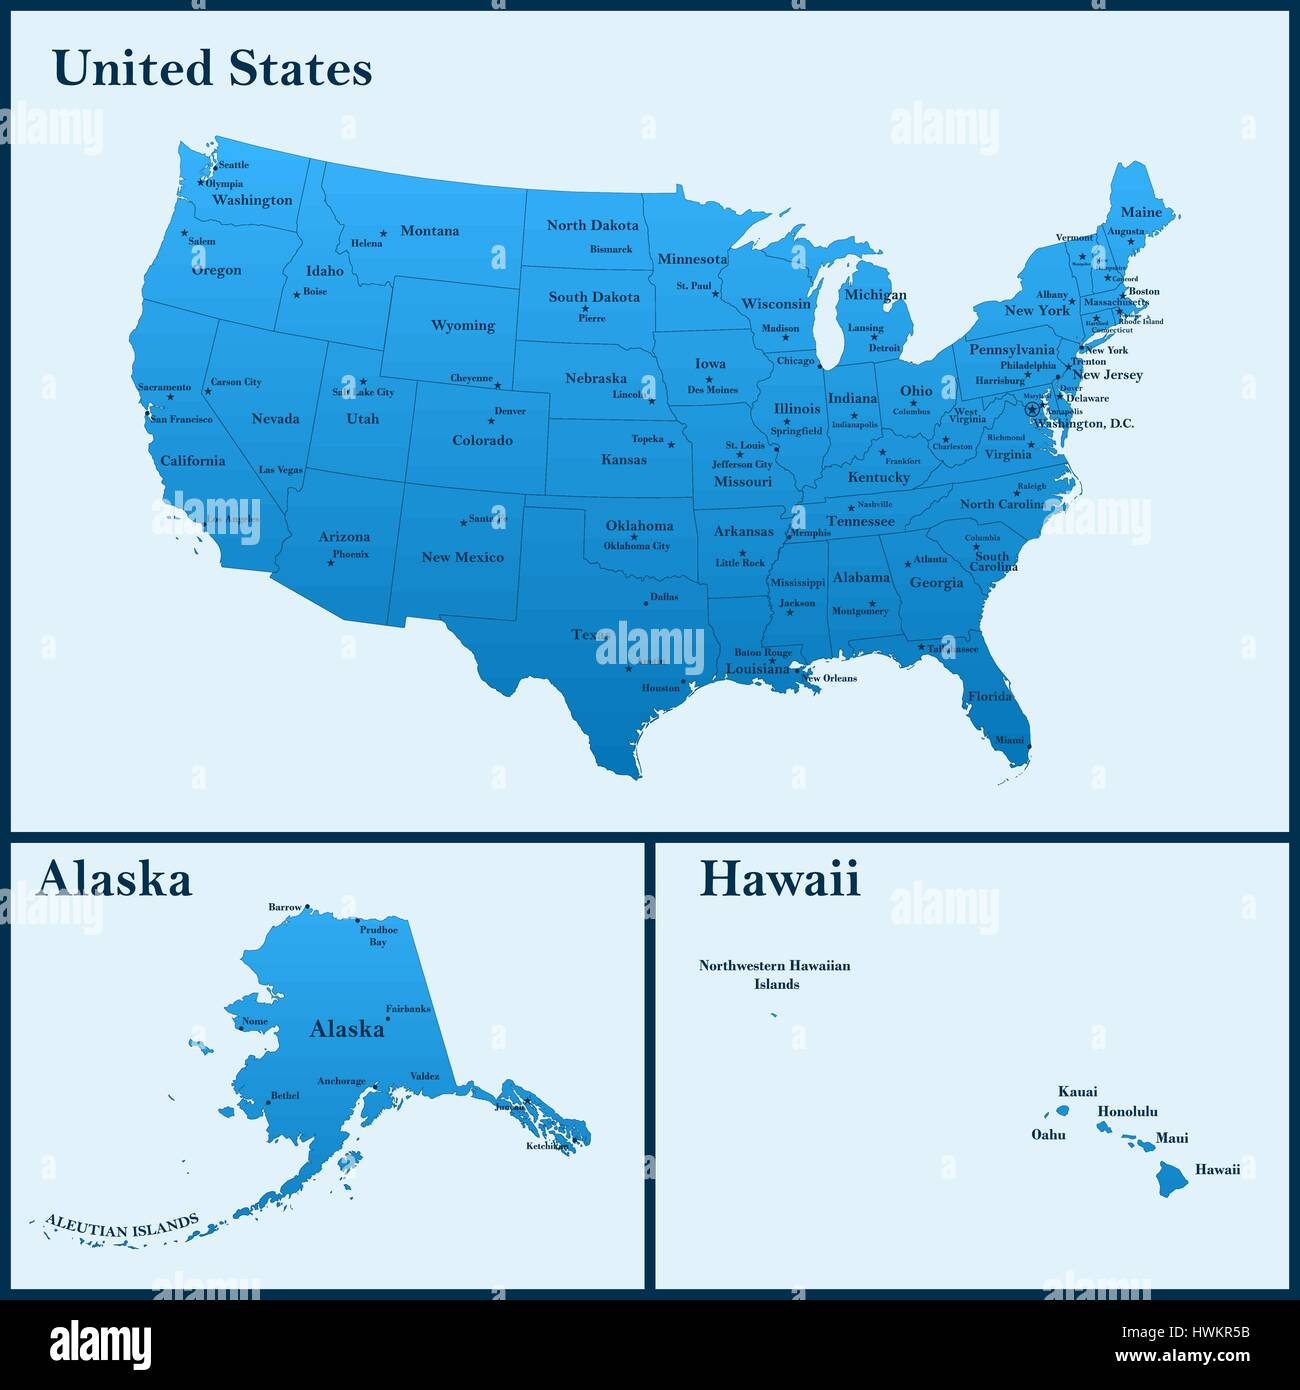 The Detailed Map Of The USA Including Alaska And Hawaii The - Usa map with hawaii and alaska